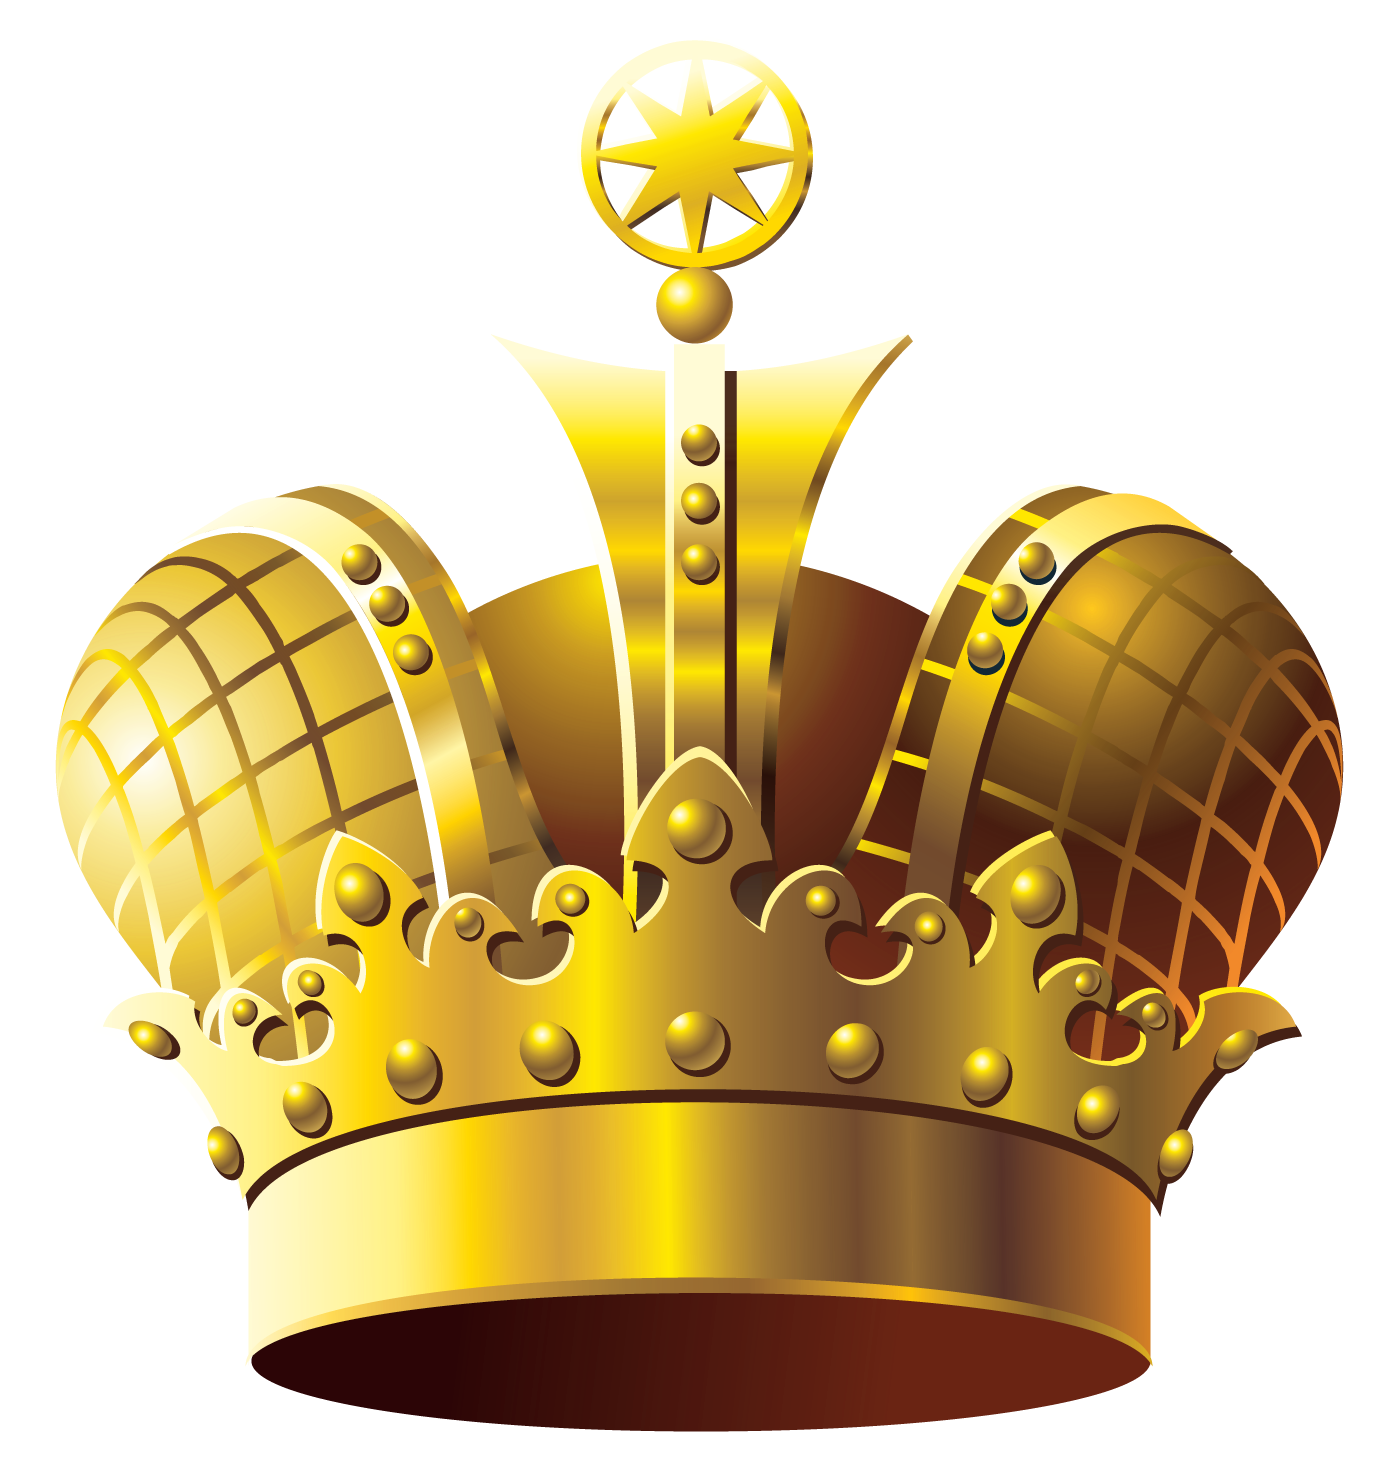 Man crown clipart image black and white download Golden Crown PNG Clipart image black and white download